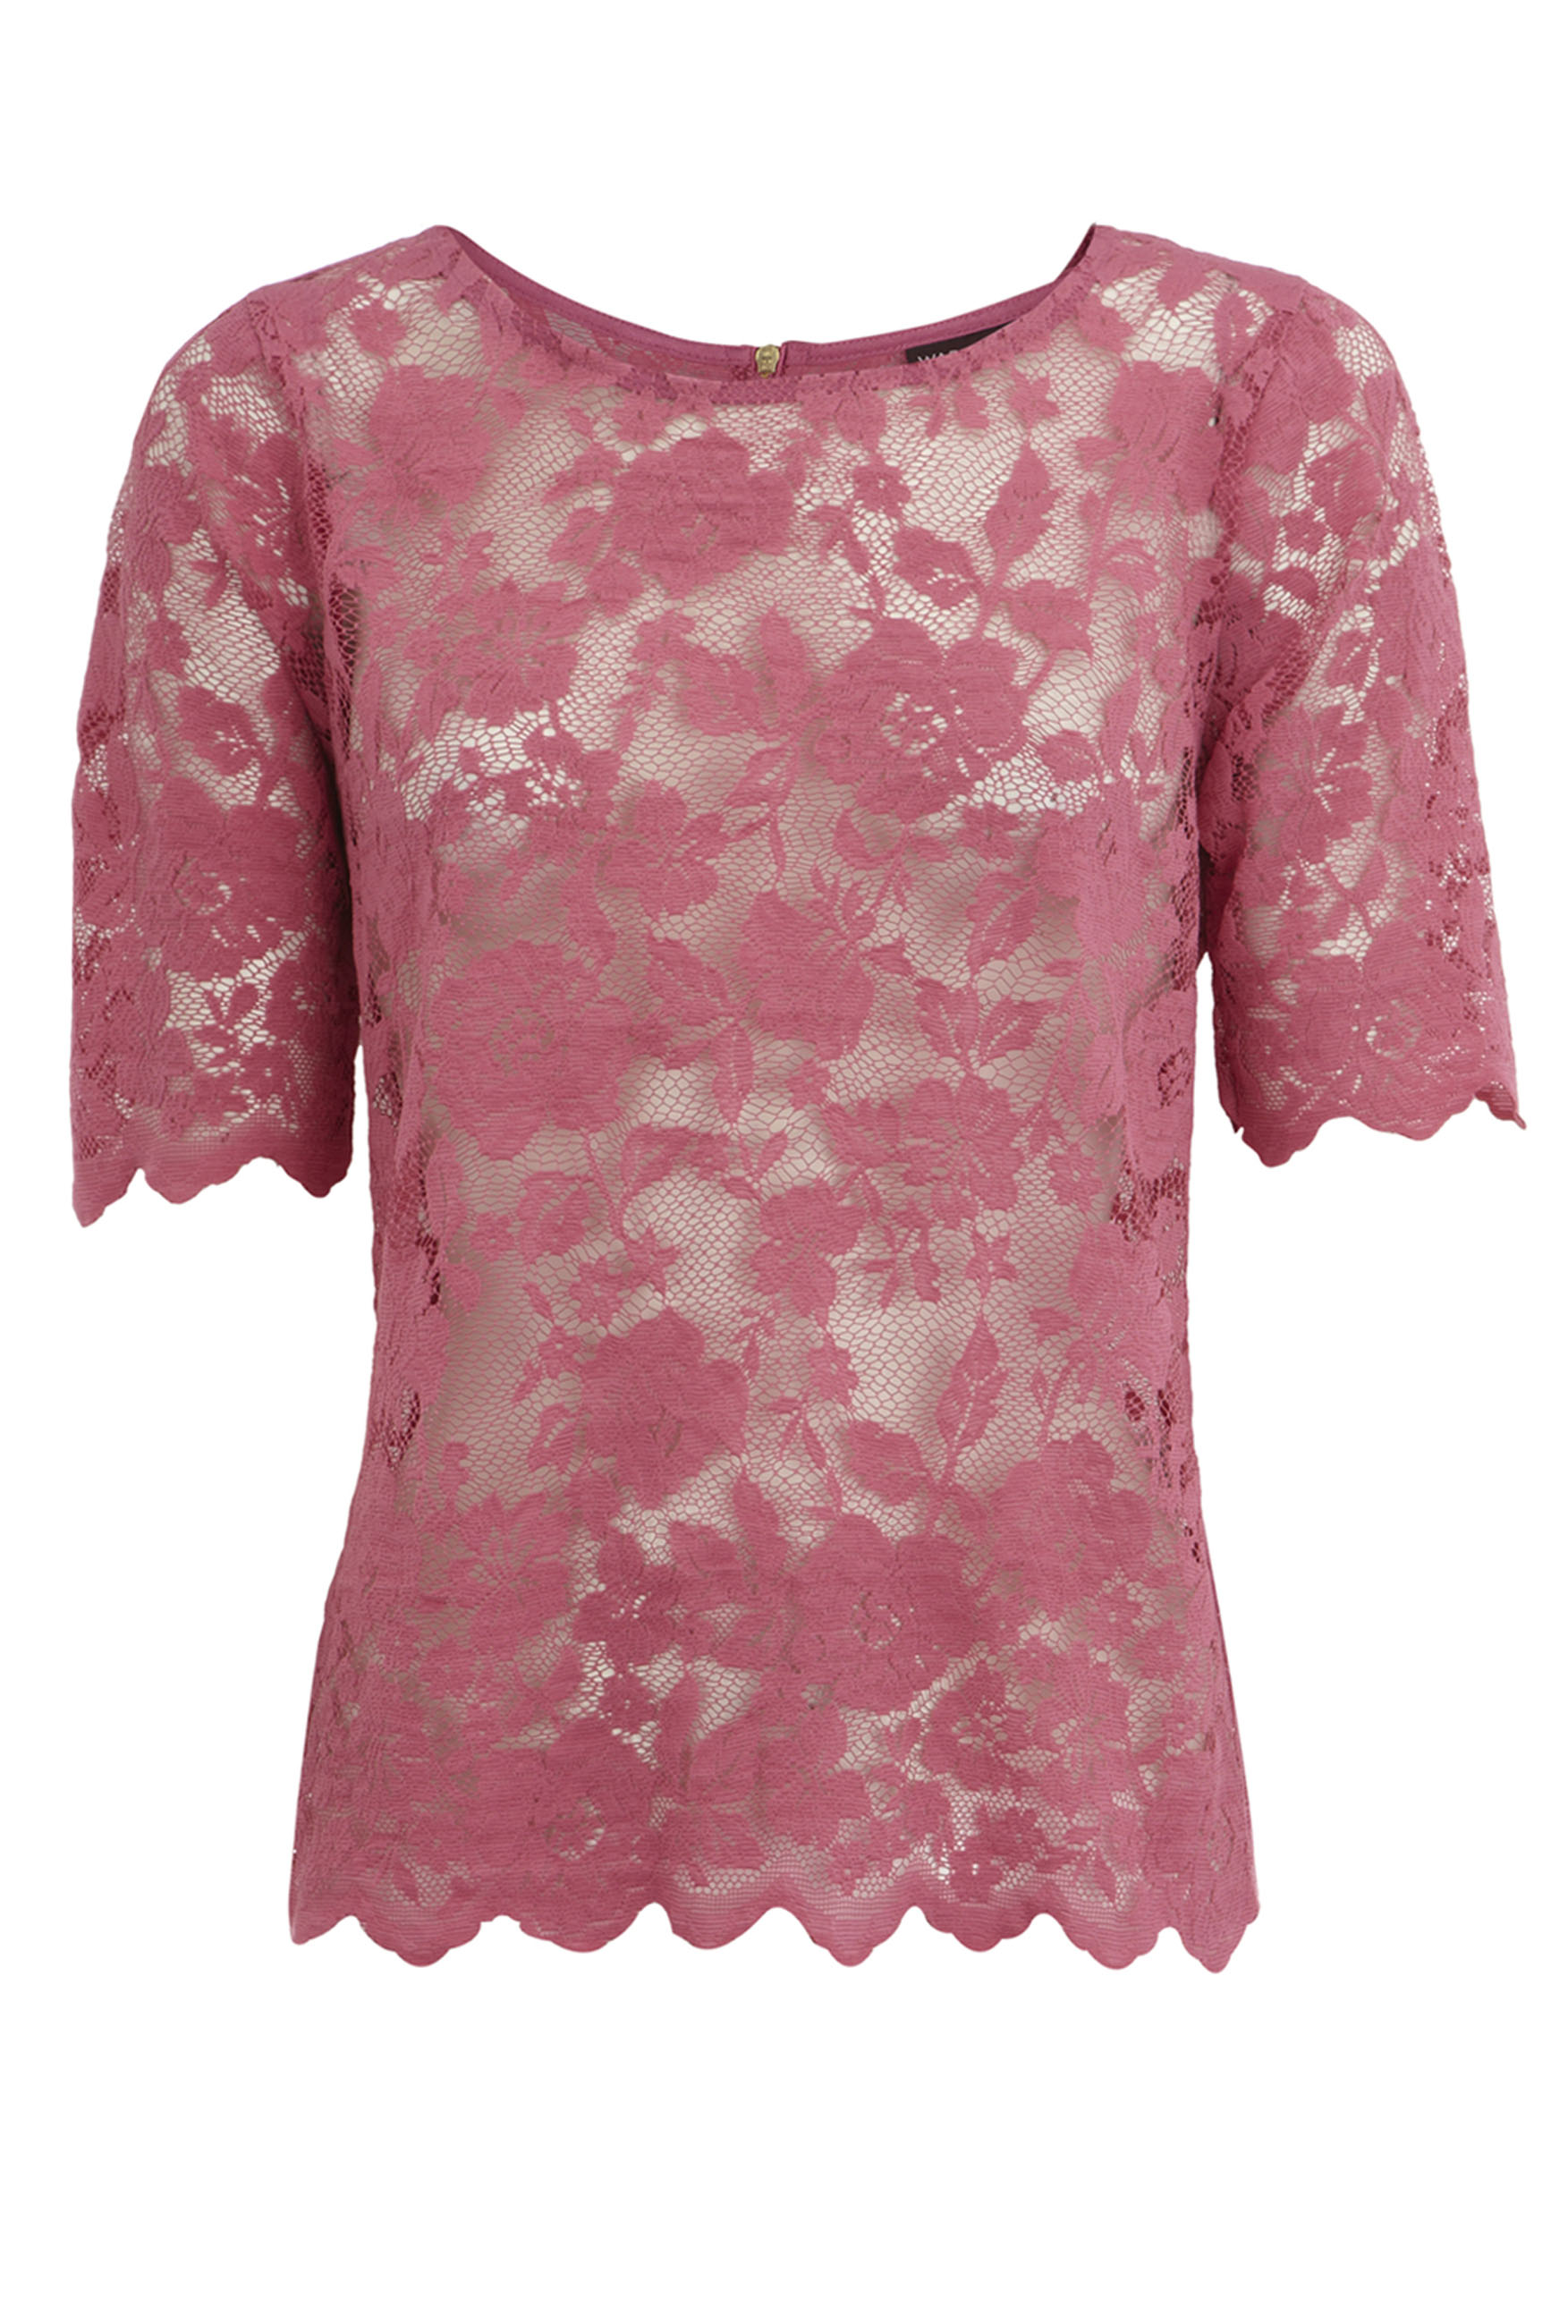 Warehouse Pink Lace Blouse - Tie Blouse